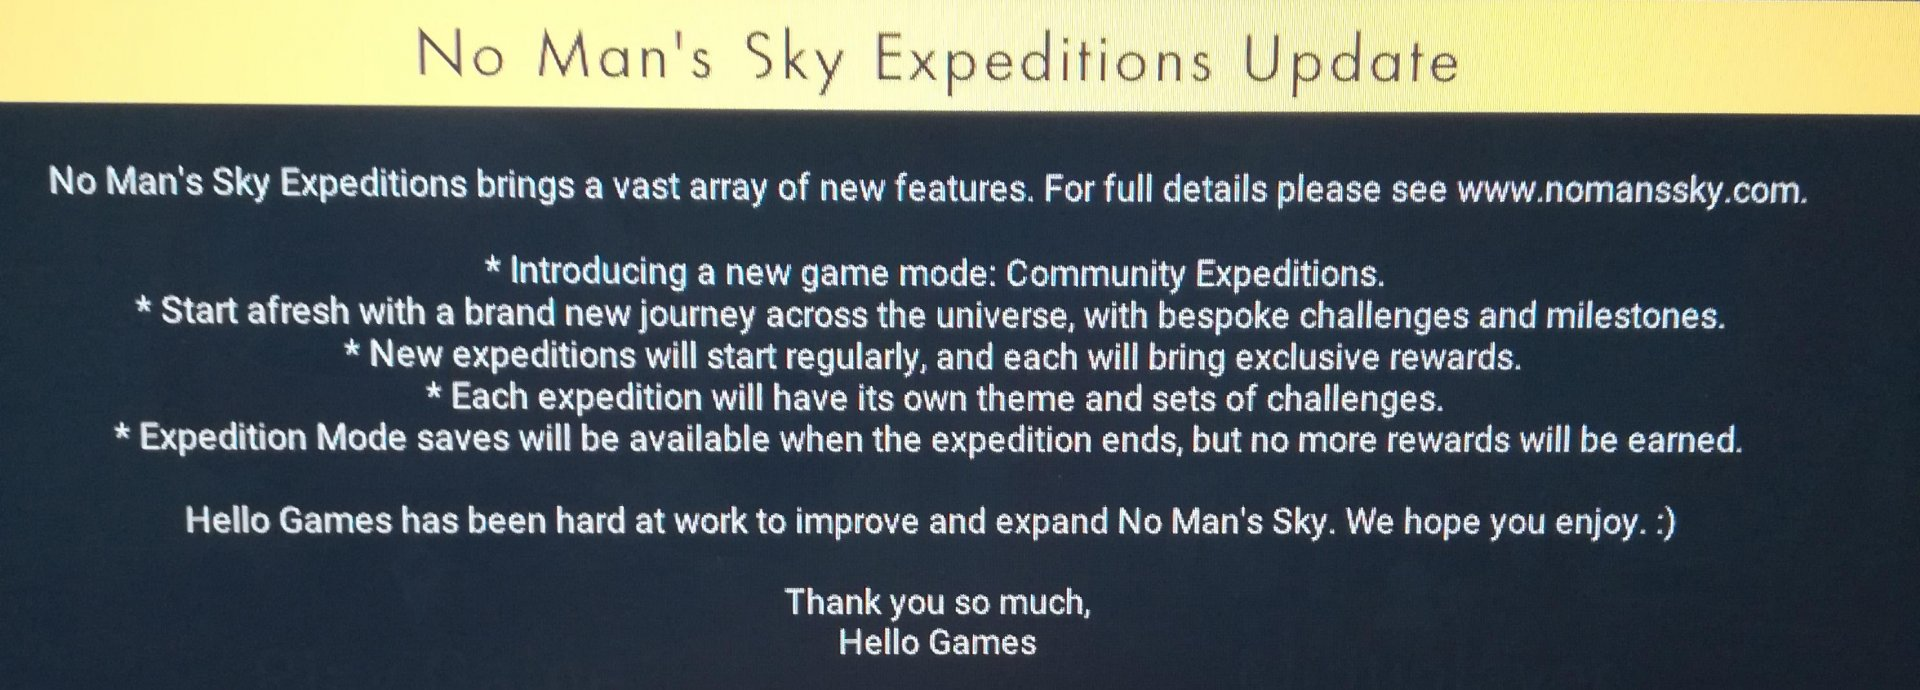 no man's sky expeditions update leak